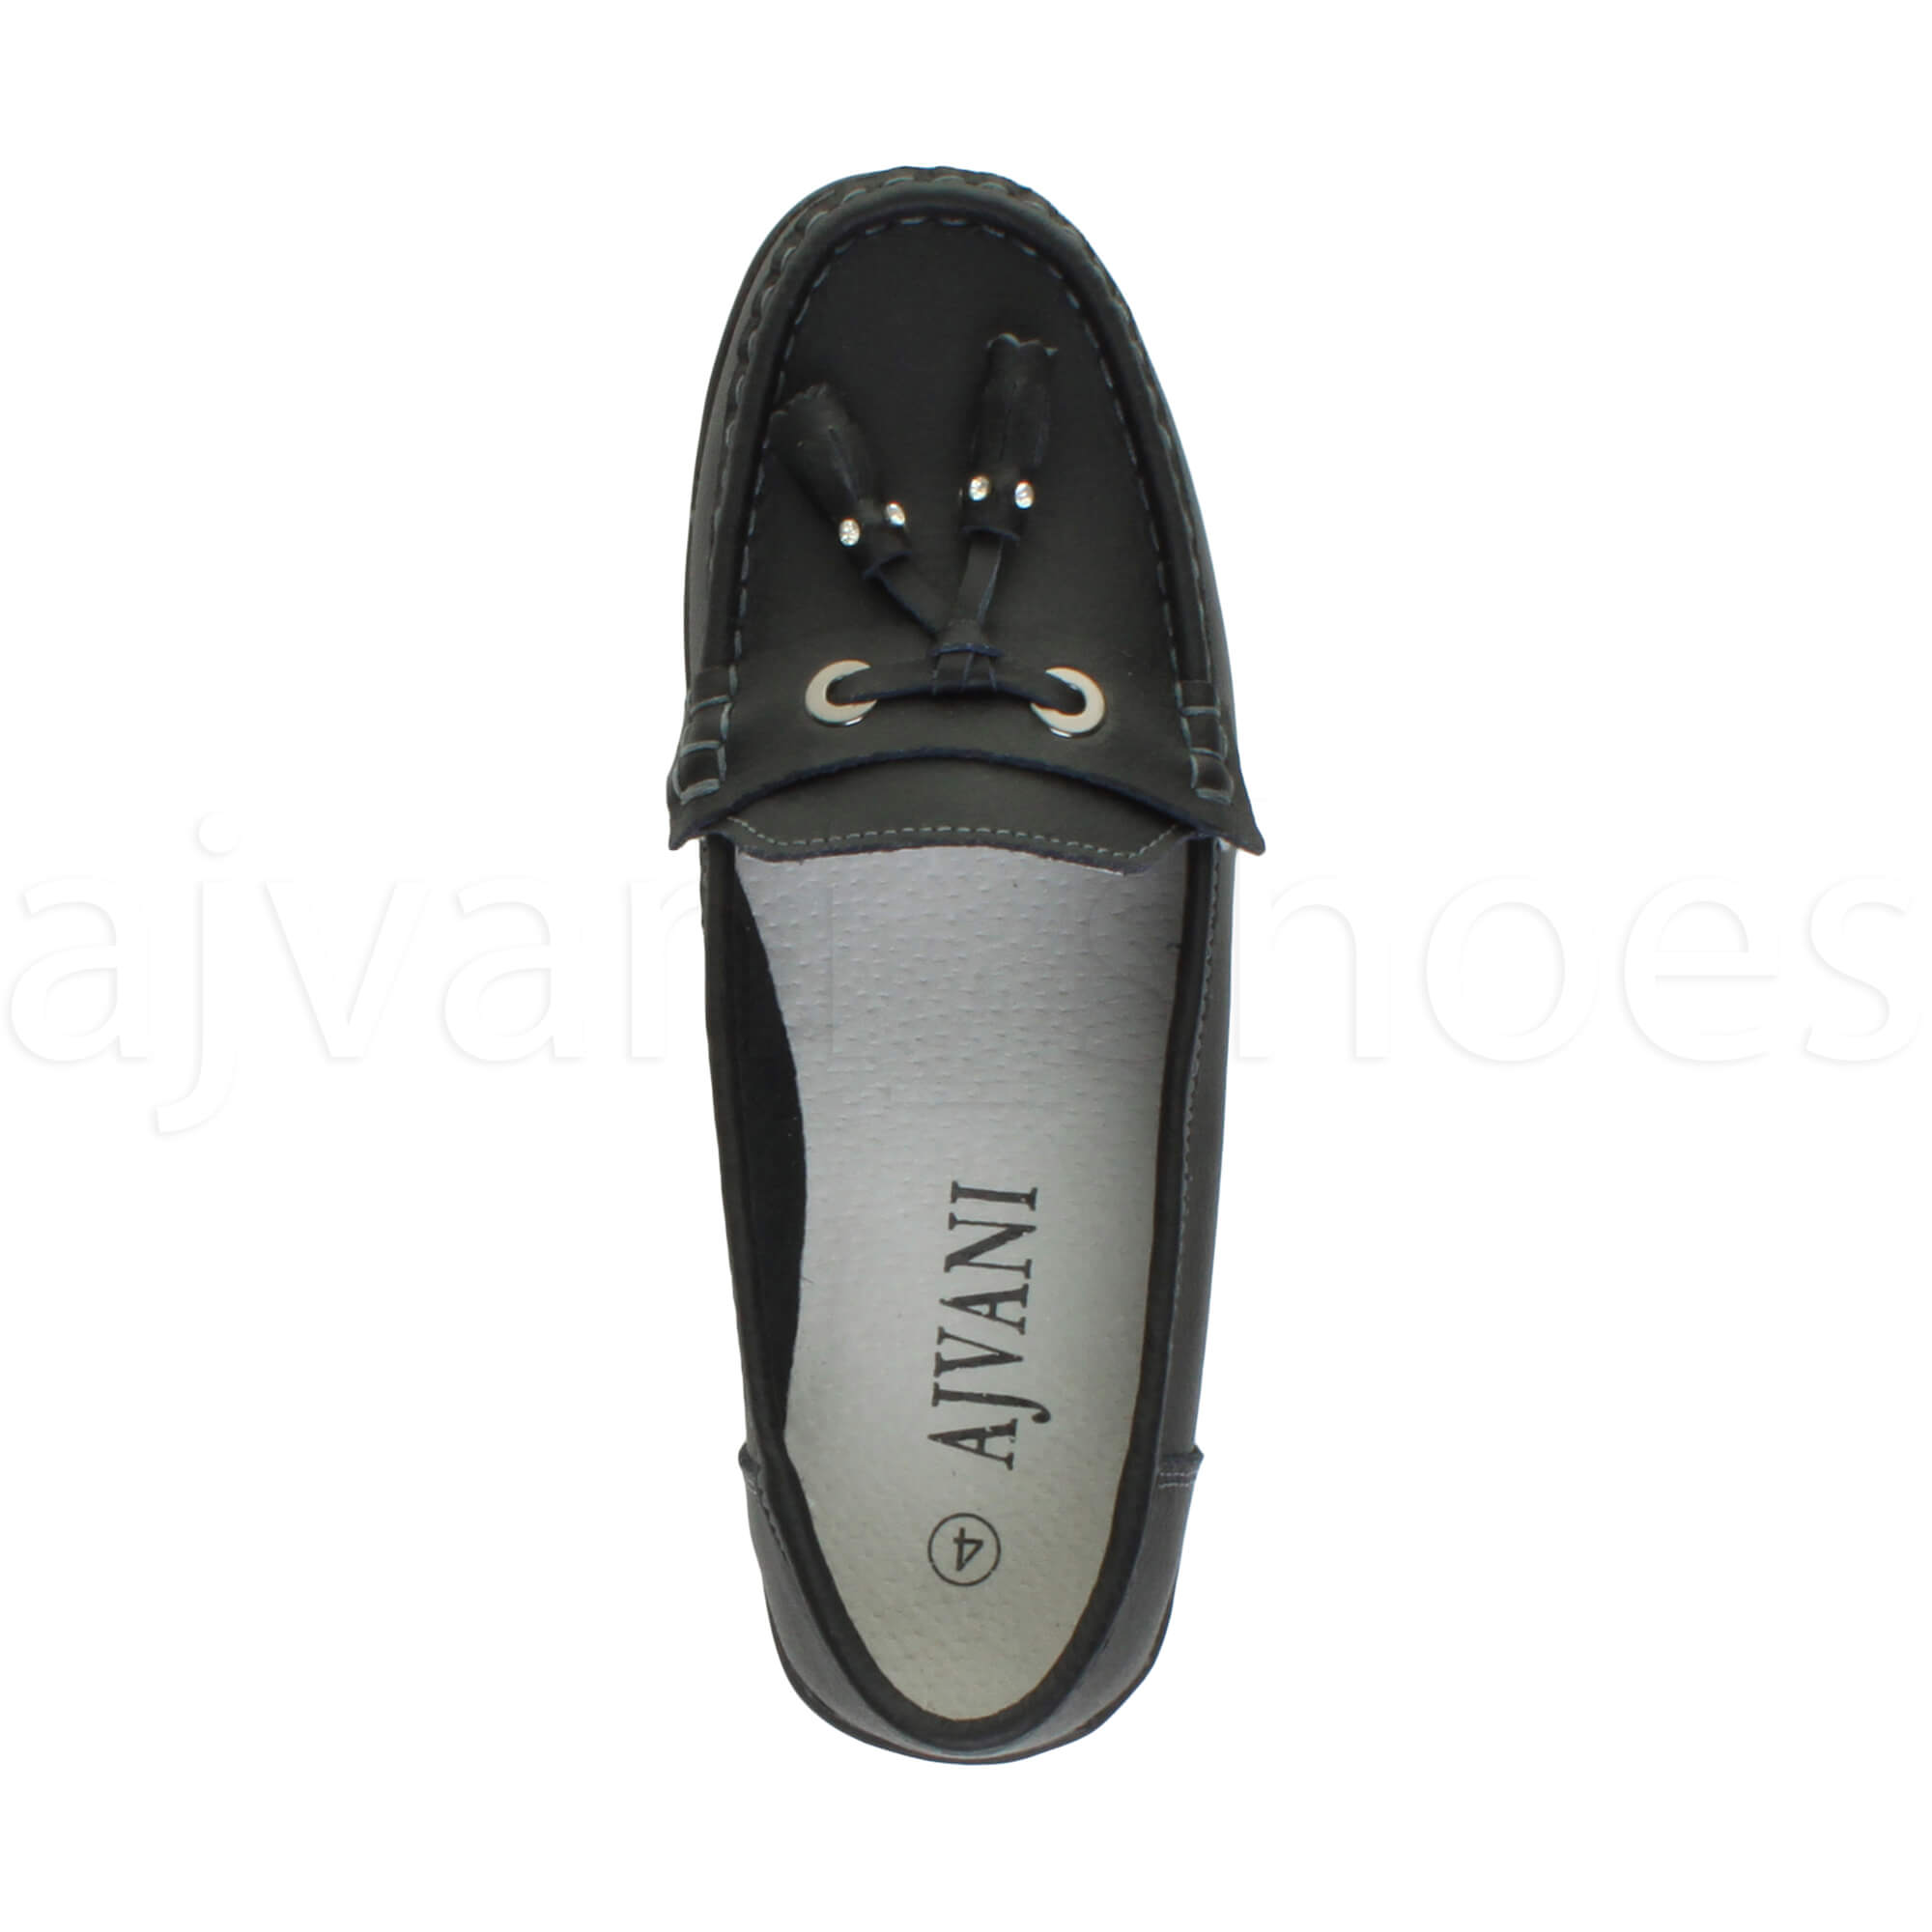 WOMENS-LADIES-LOW-HEEL-WEDGE-LEATHER-TASSEL-LOAFERS-COMFORT-MOCCASINS-SHOES-SIZE thumbnail 16